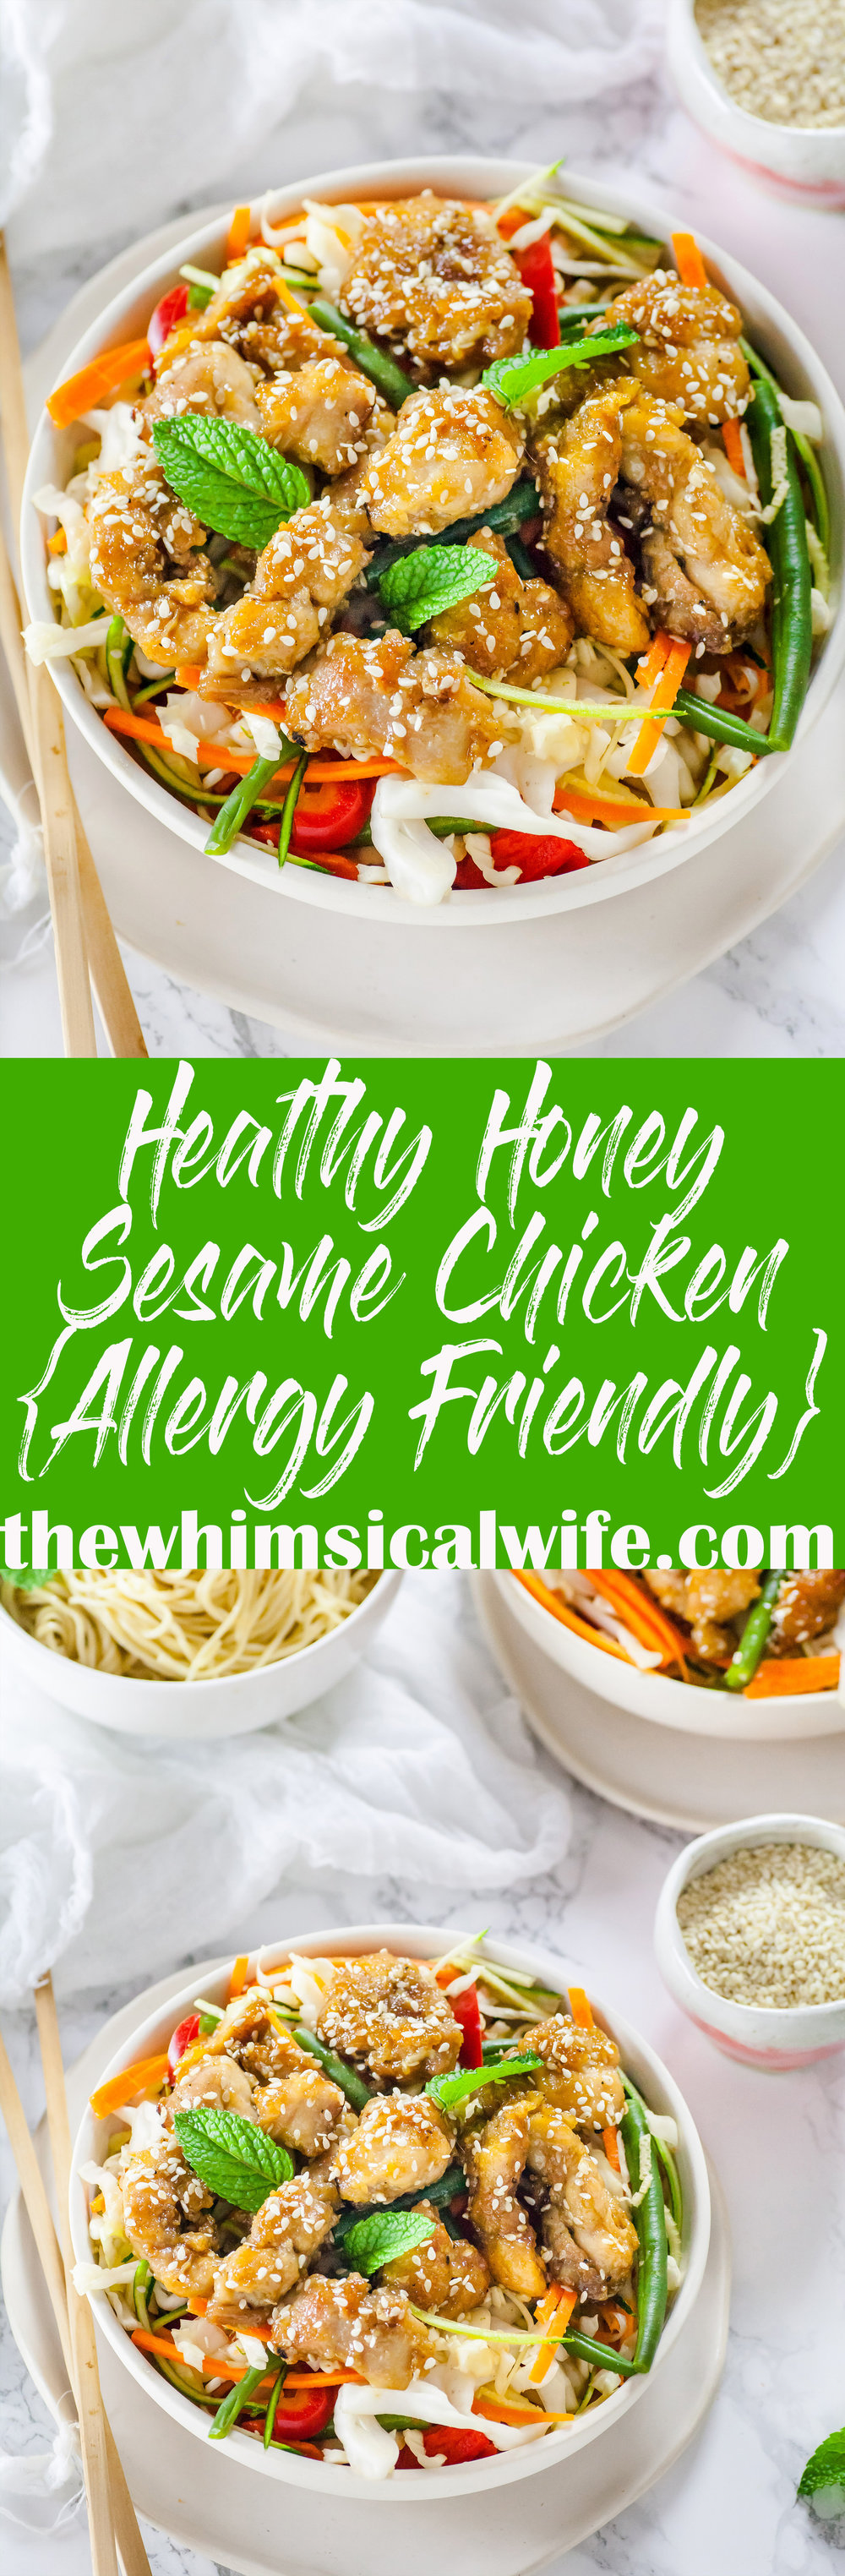 Healthy Honey Sesame Chicken { GF, DF, Nut & Egg Free}